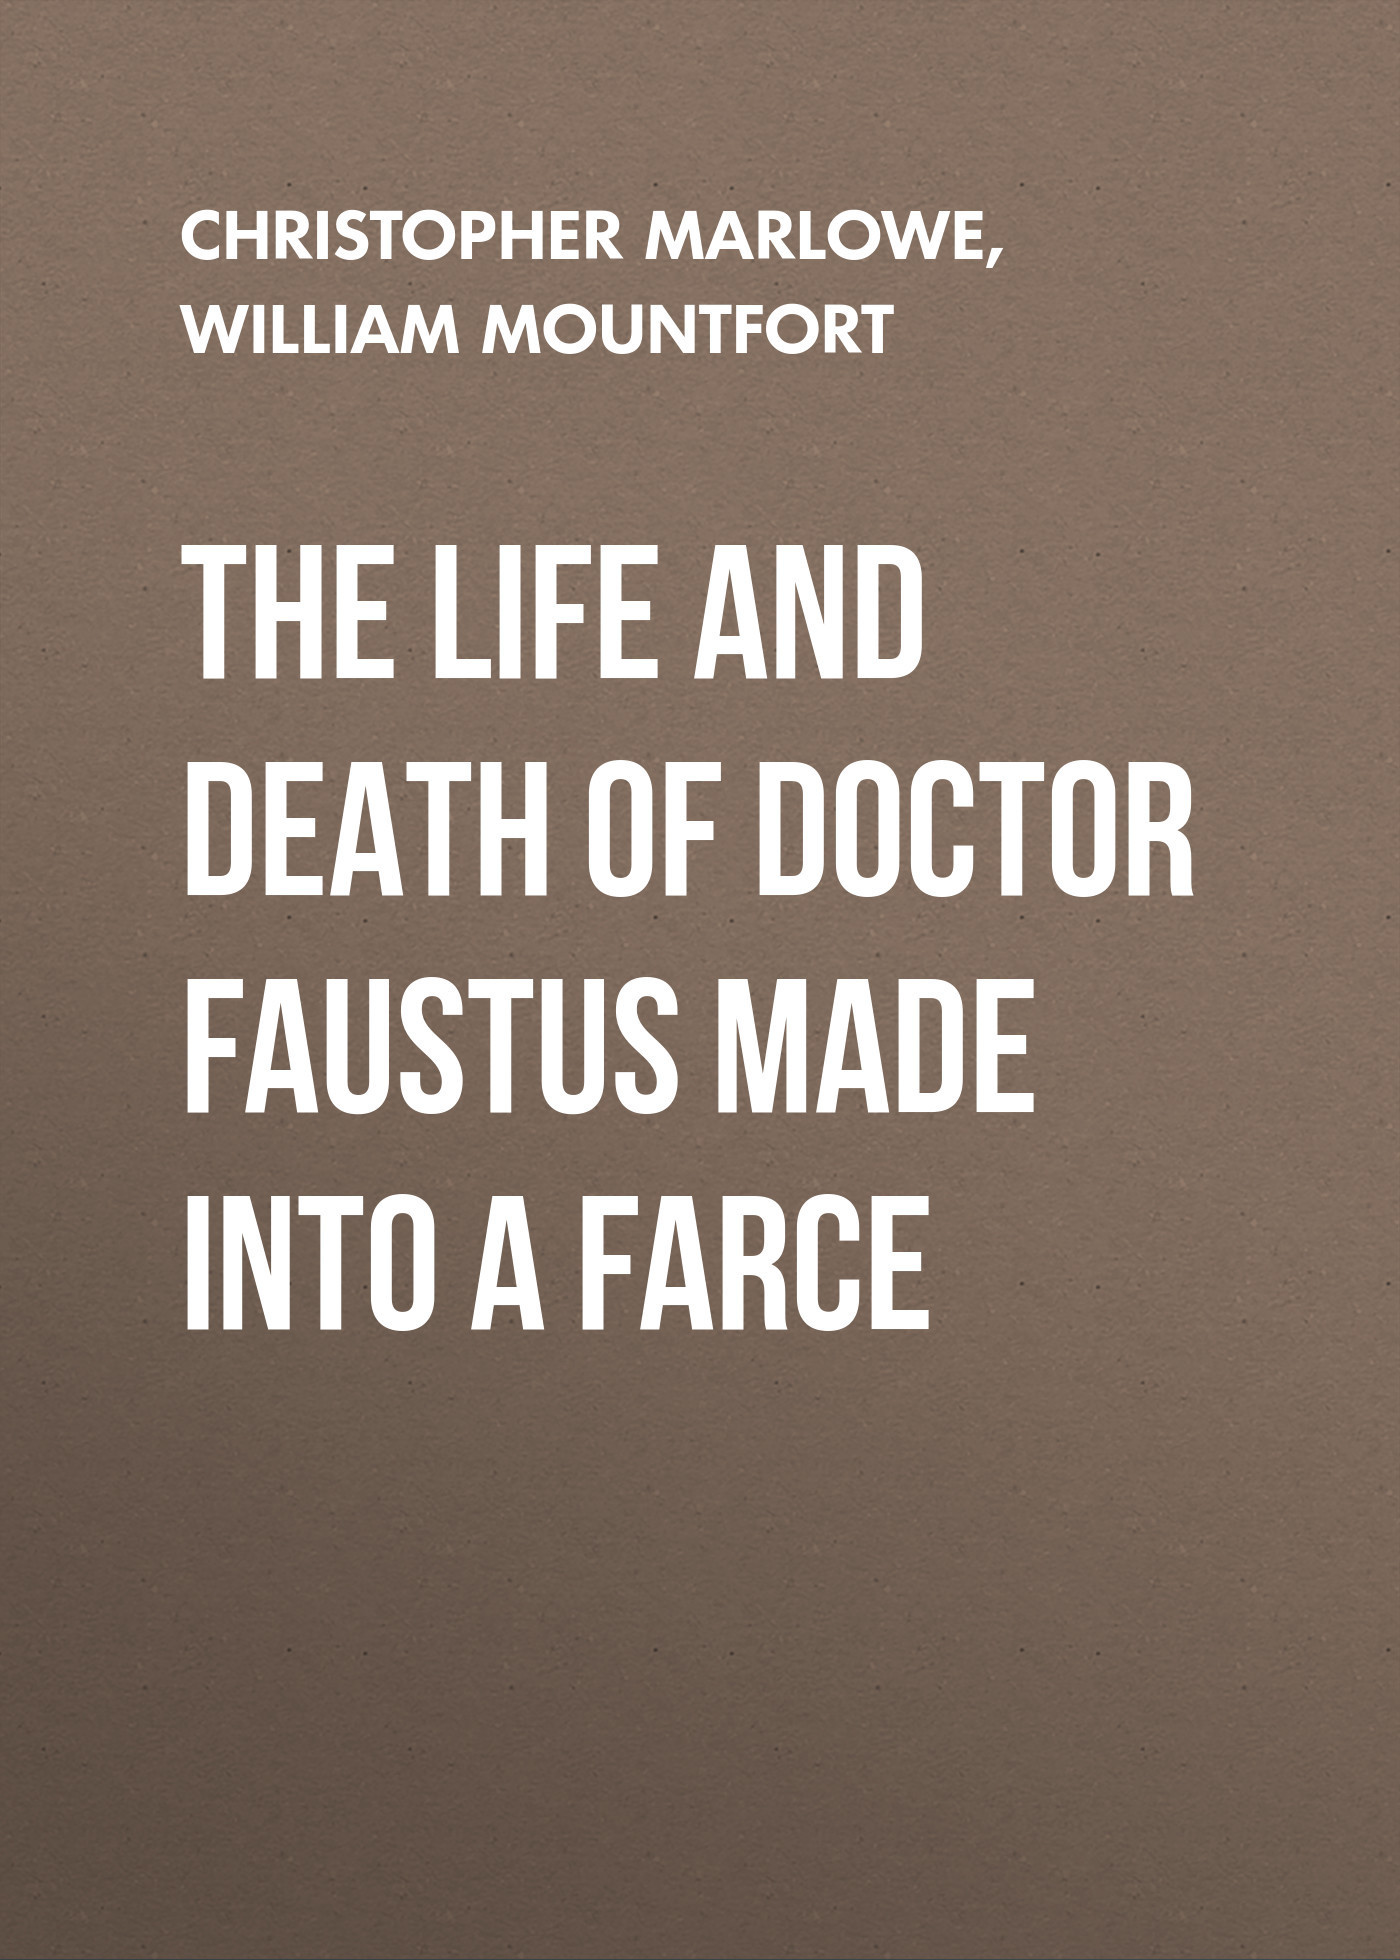 Christopher Marlowe The Life and Death of Doctor Faustus Made into a Farce poison ivy cycle of life and death